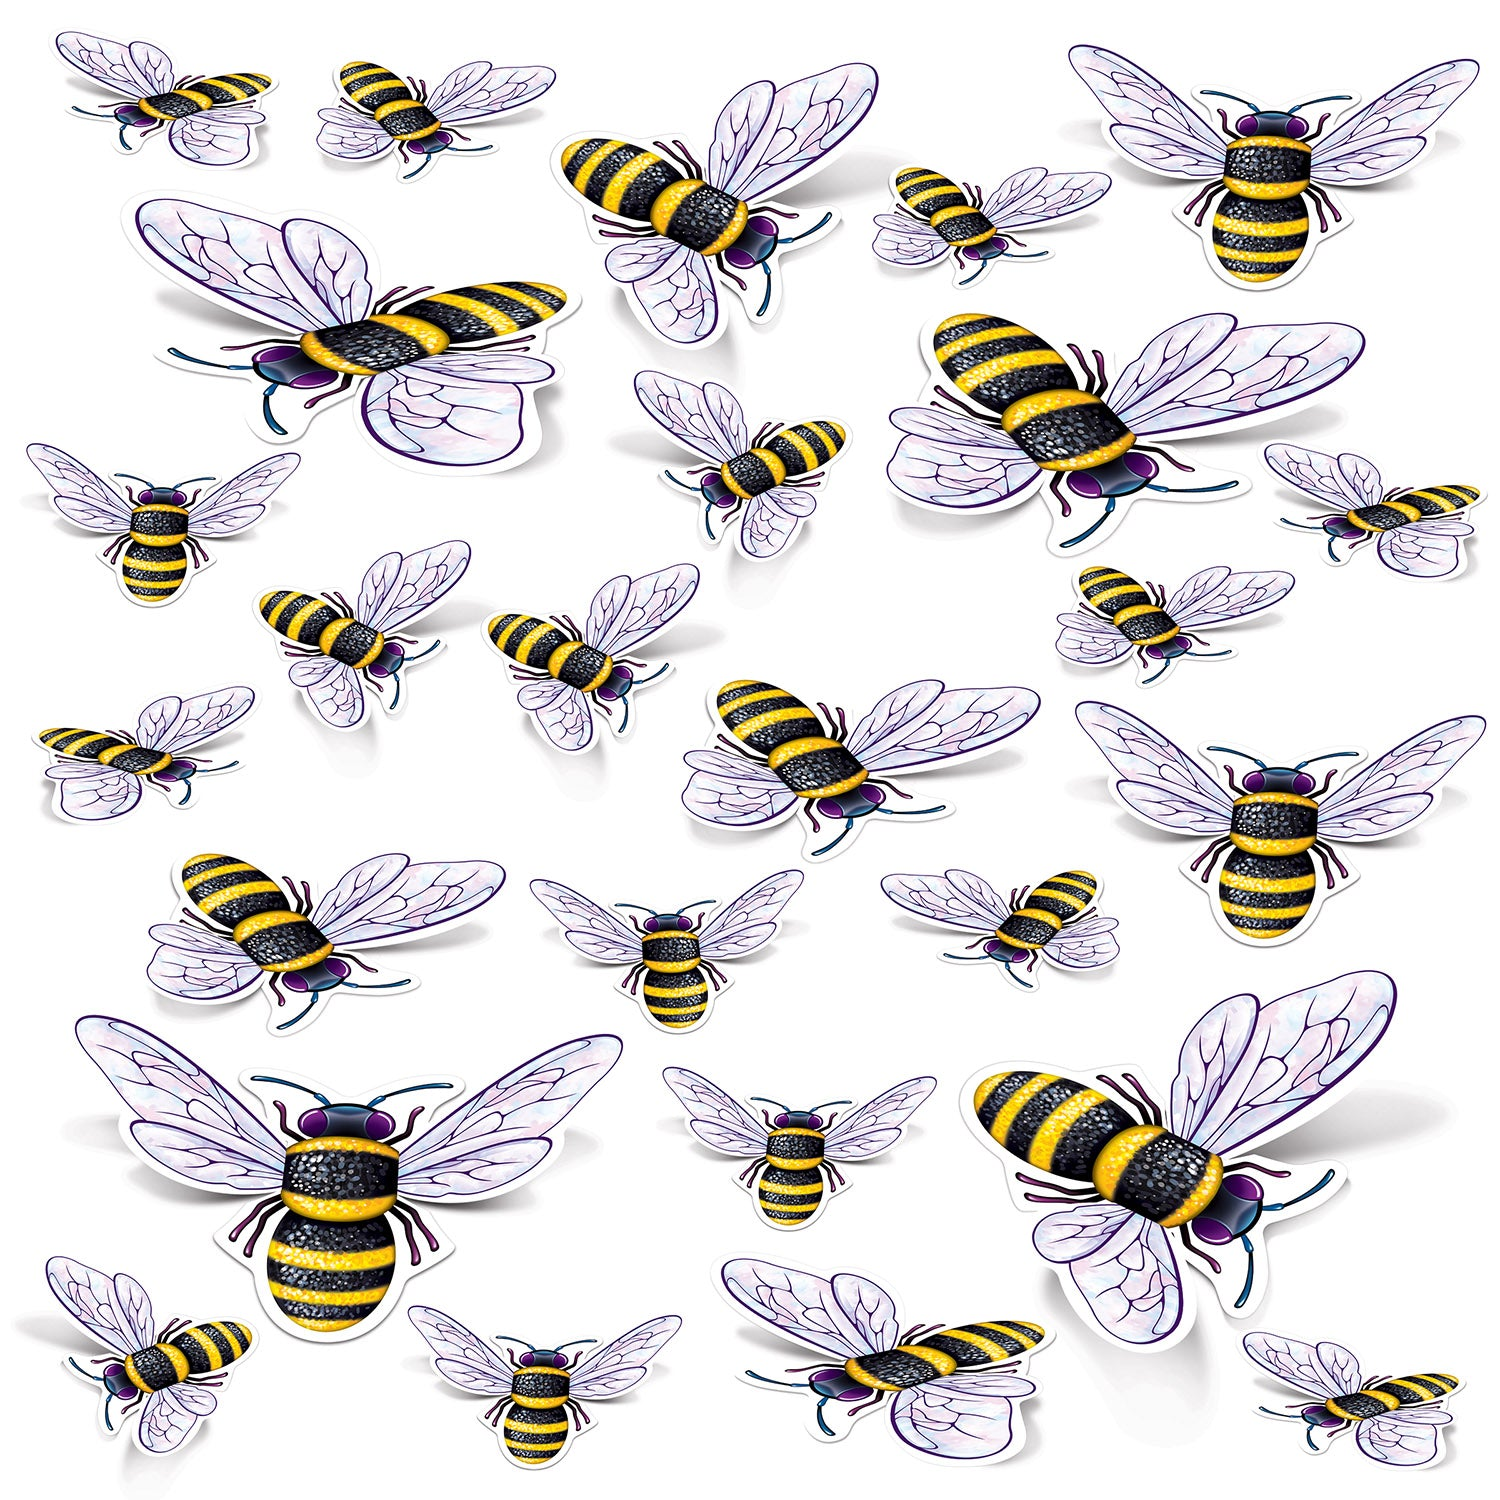 Bee Cutouts (26/Pkg) by Beistle - Spring/Summer Theme Decorations